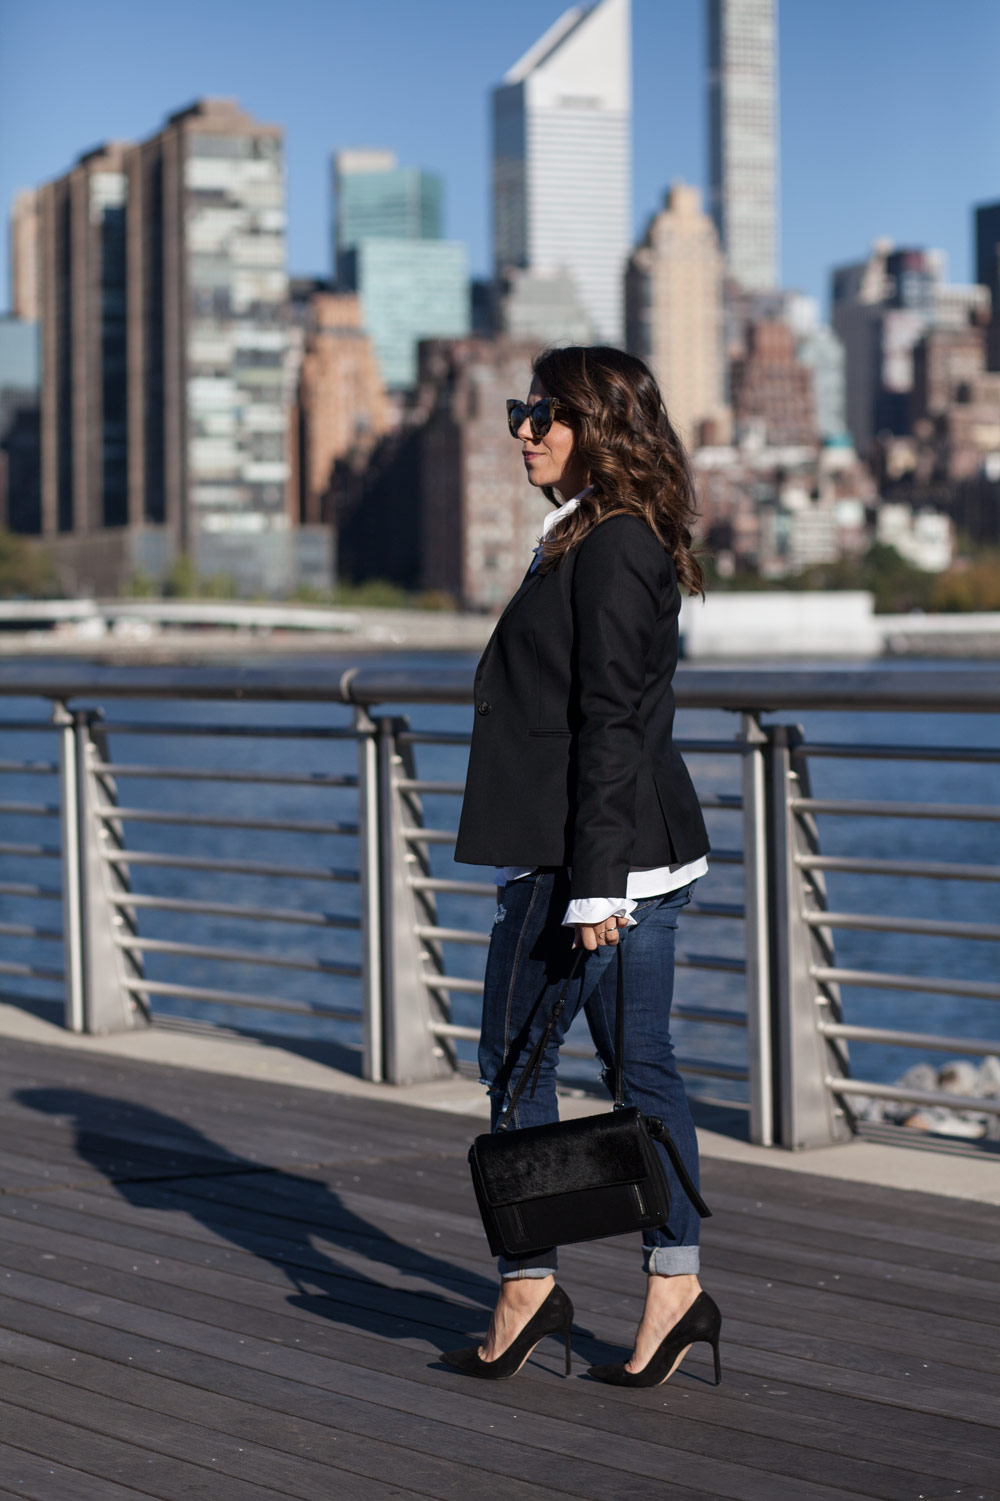 black-blazer-classic-look-black-manolo-pumps-distressed-denim-new-york-city-fashion-blogger-corporate-catwalk-6